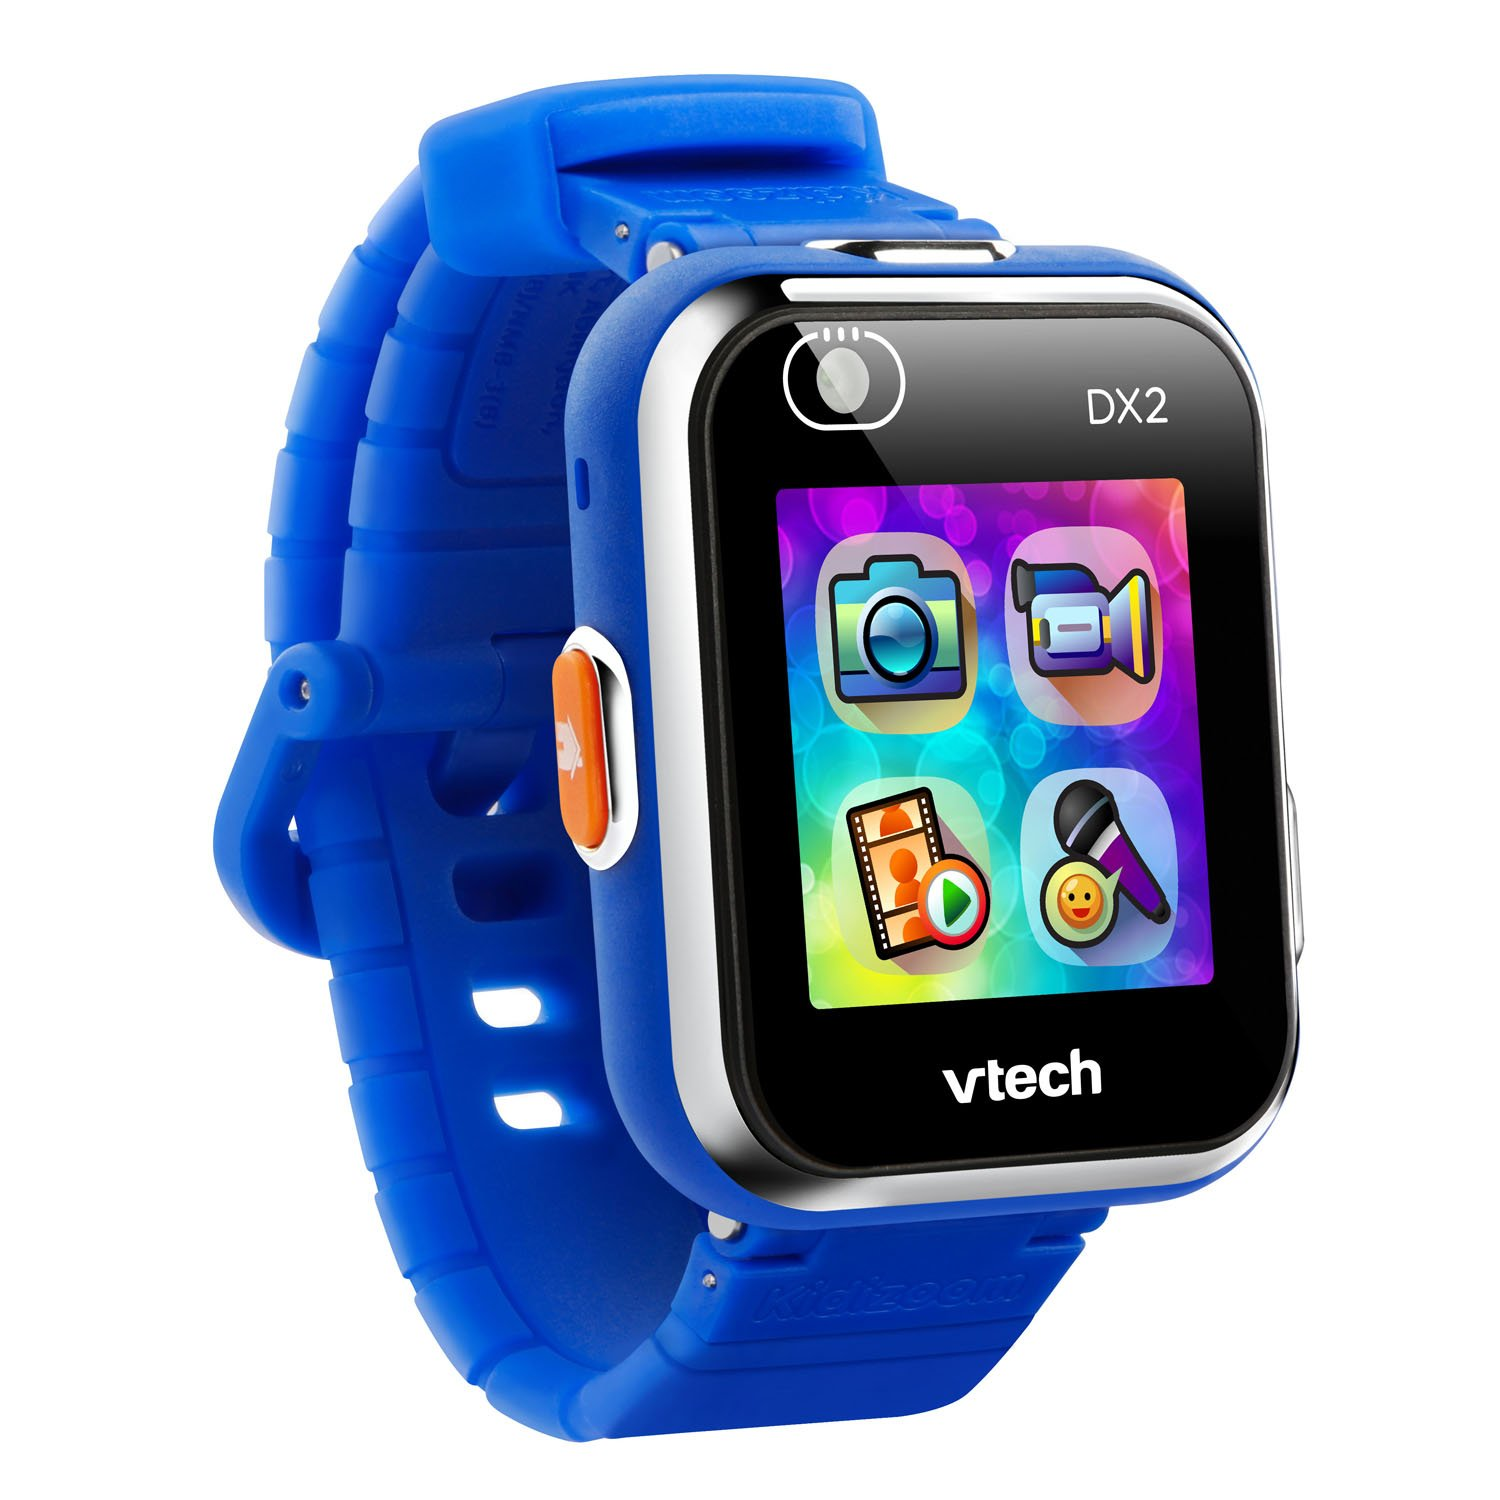 VTech Kidizoom Smartwatch DX2 Blue (Frustration Free Packaging) by VTech (Image #1)